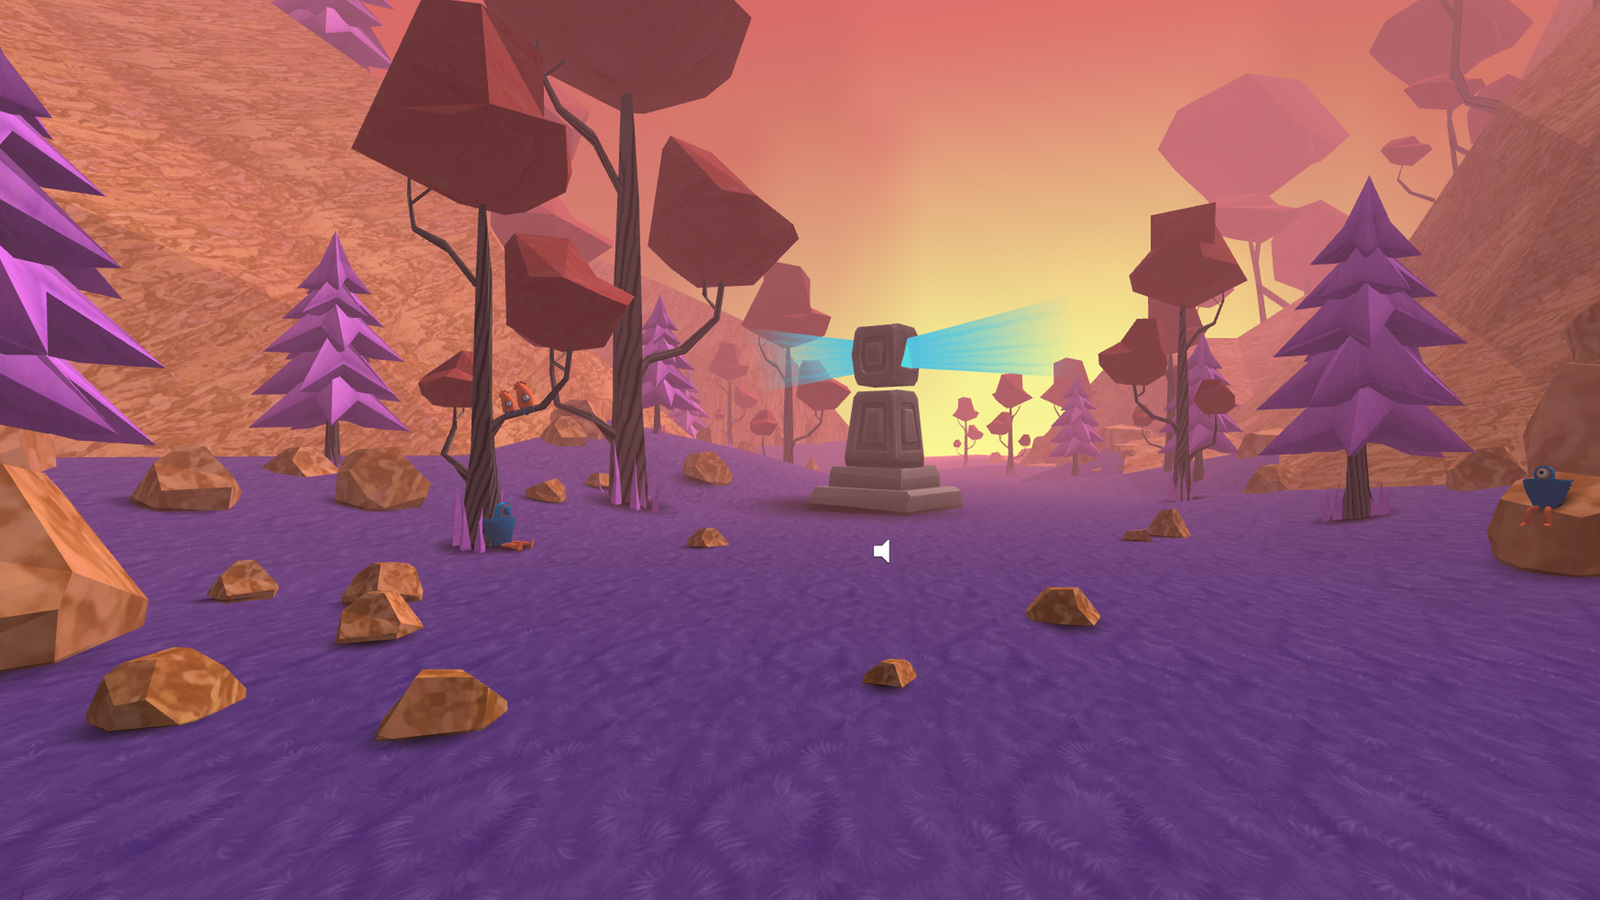 Preview image of The Valley, a mysterious landscape, populated with unusual creatures